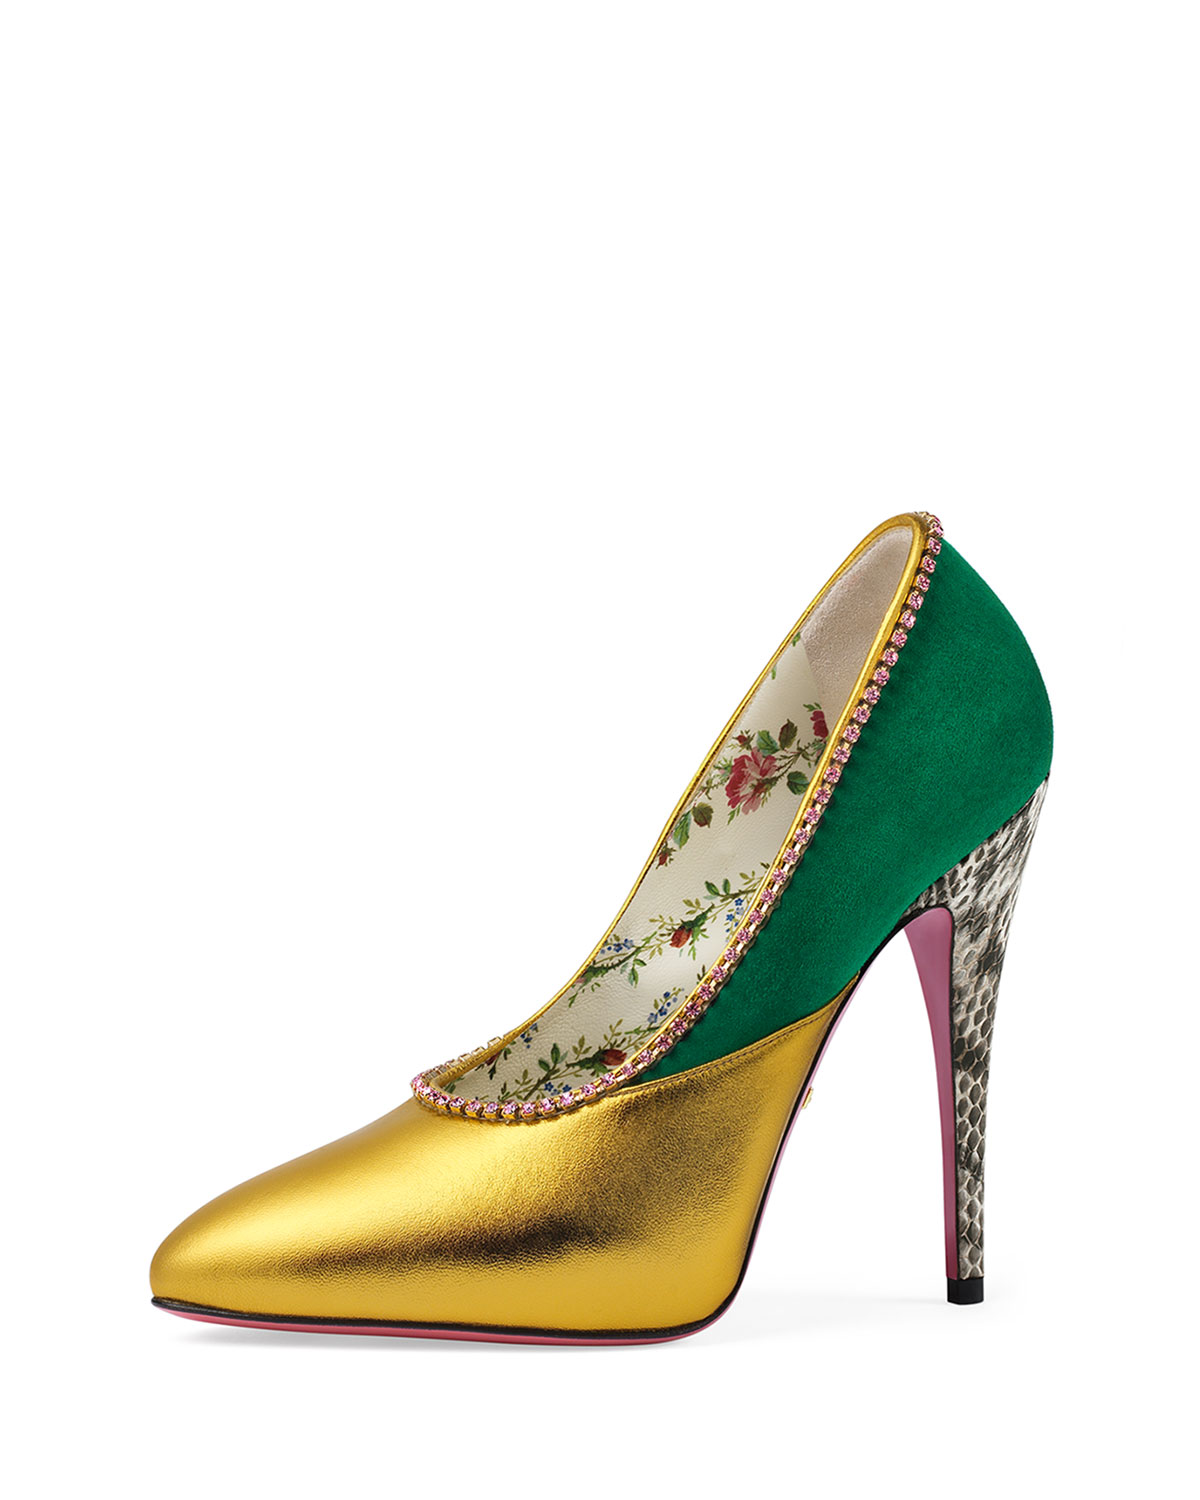 4a3cac8dc66 Gucci 110mm Peachy Leather and Suede Pump